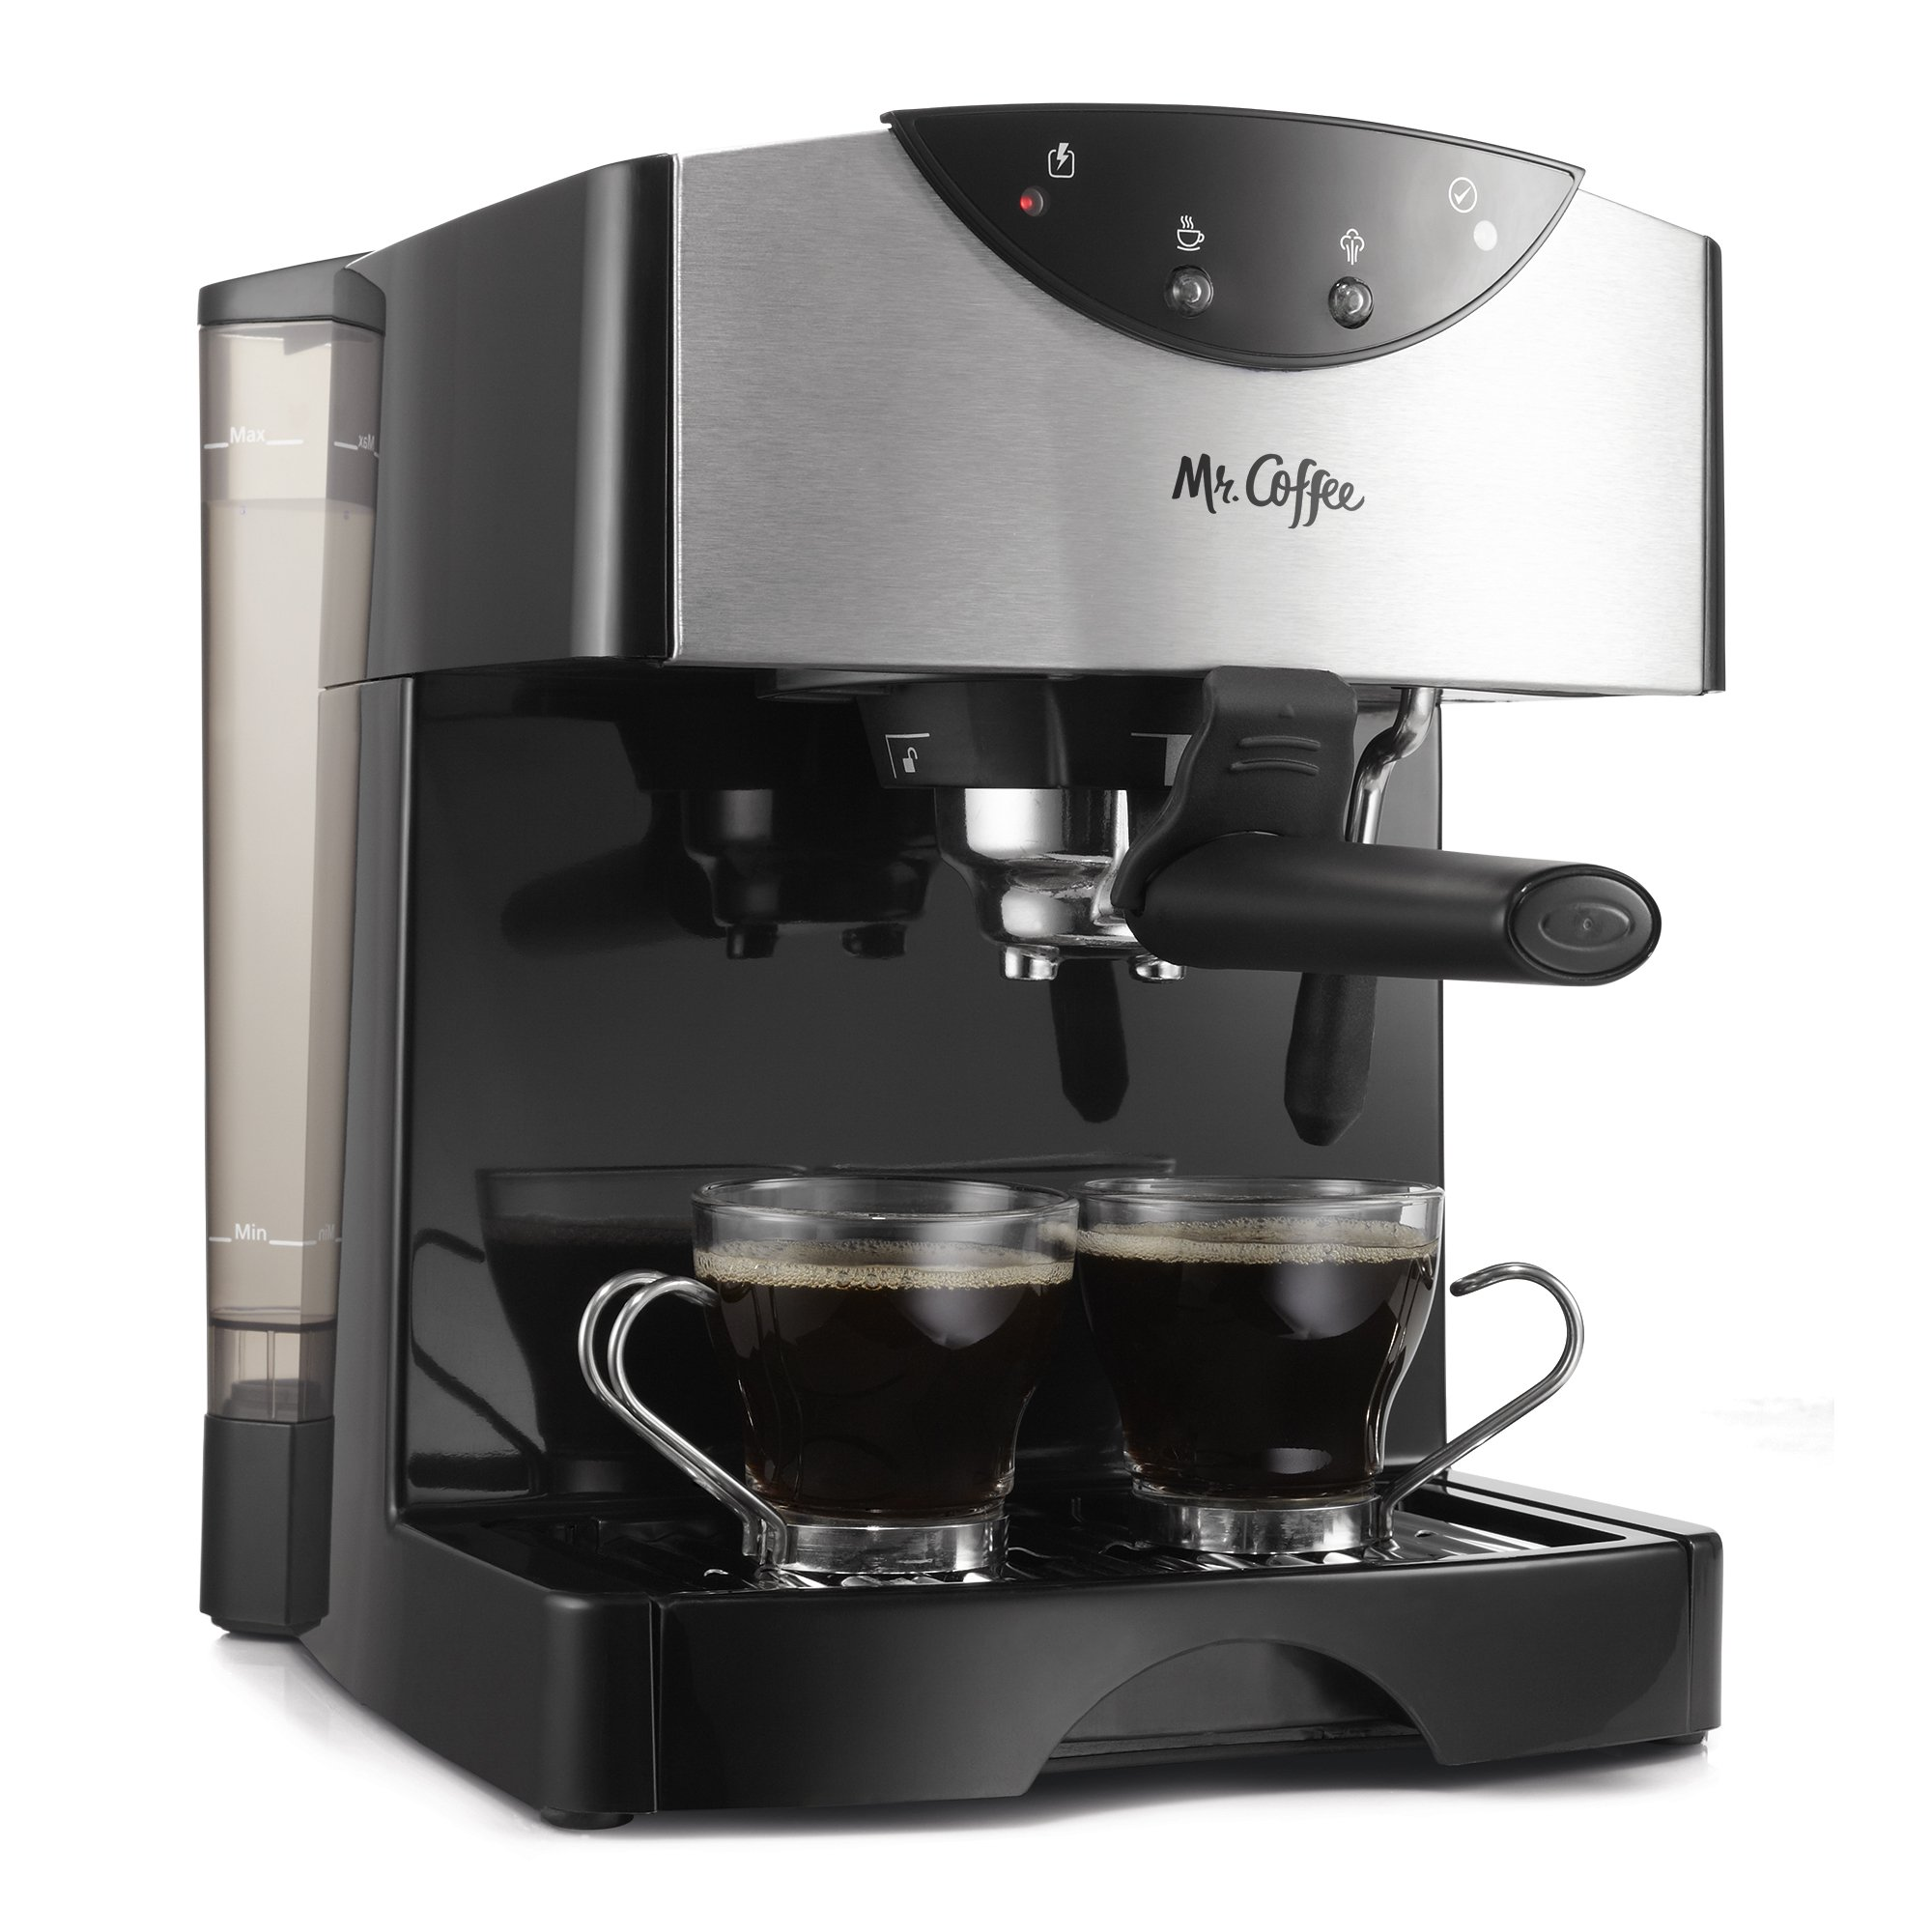 Mr. Coffee Espresso Machine